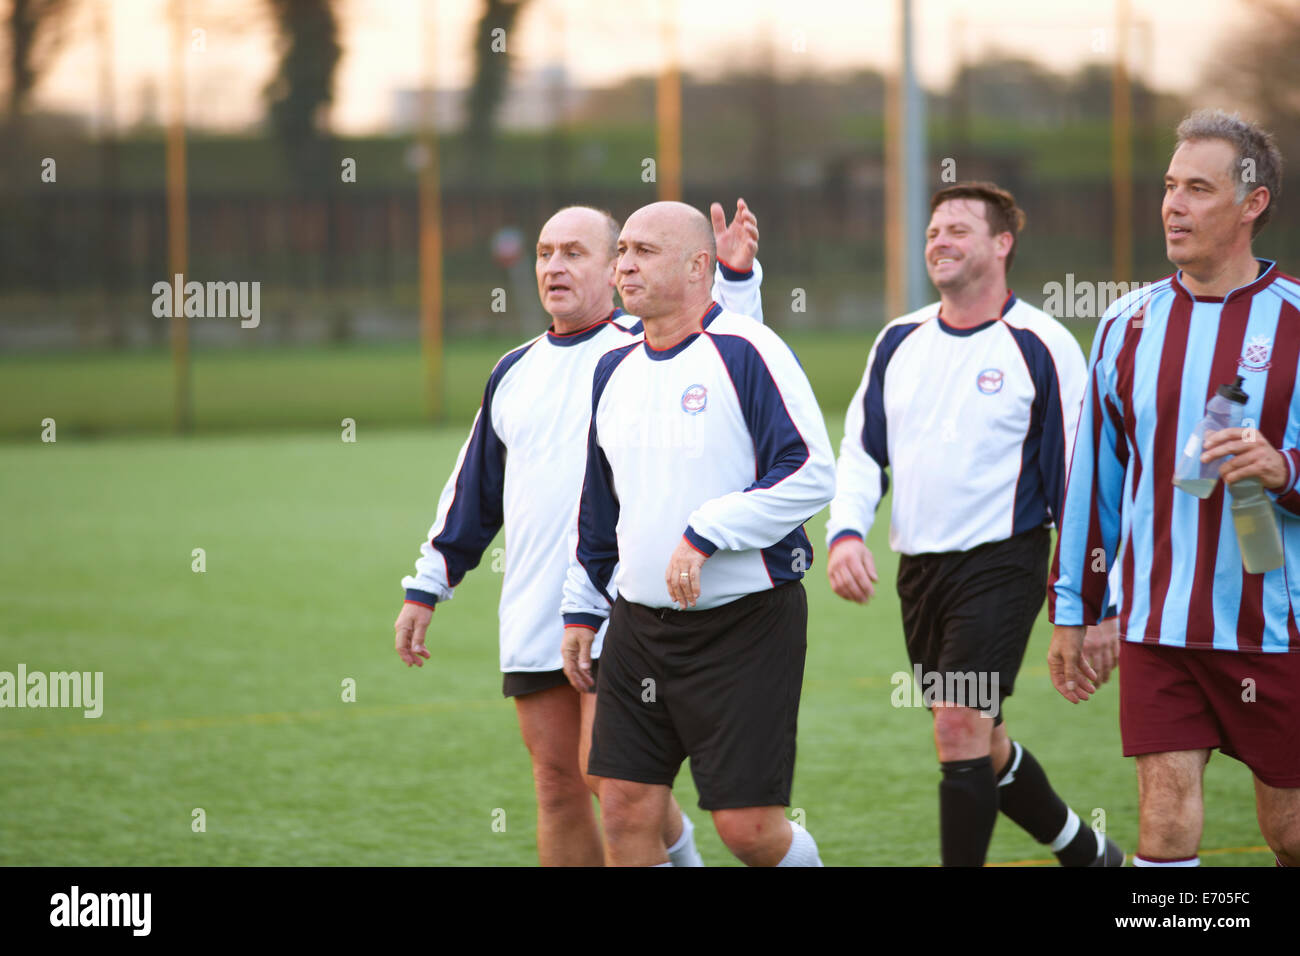 Football players at end of game - Stock Image